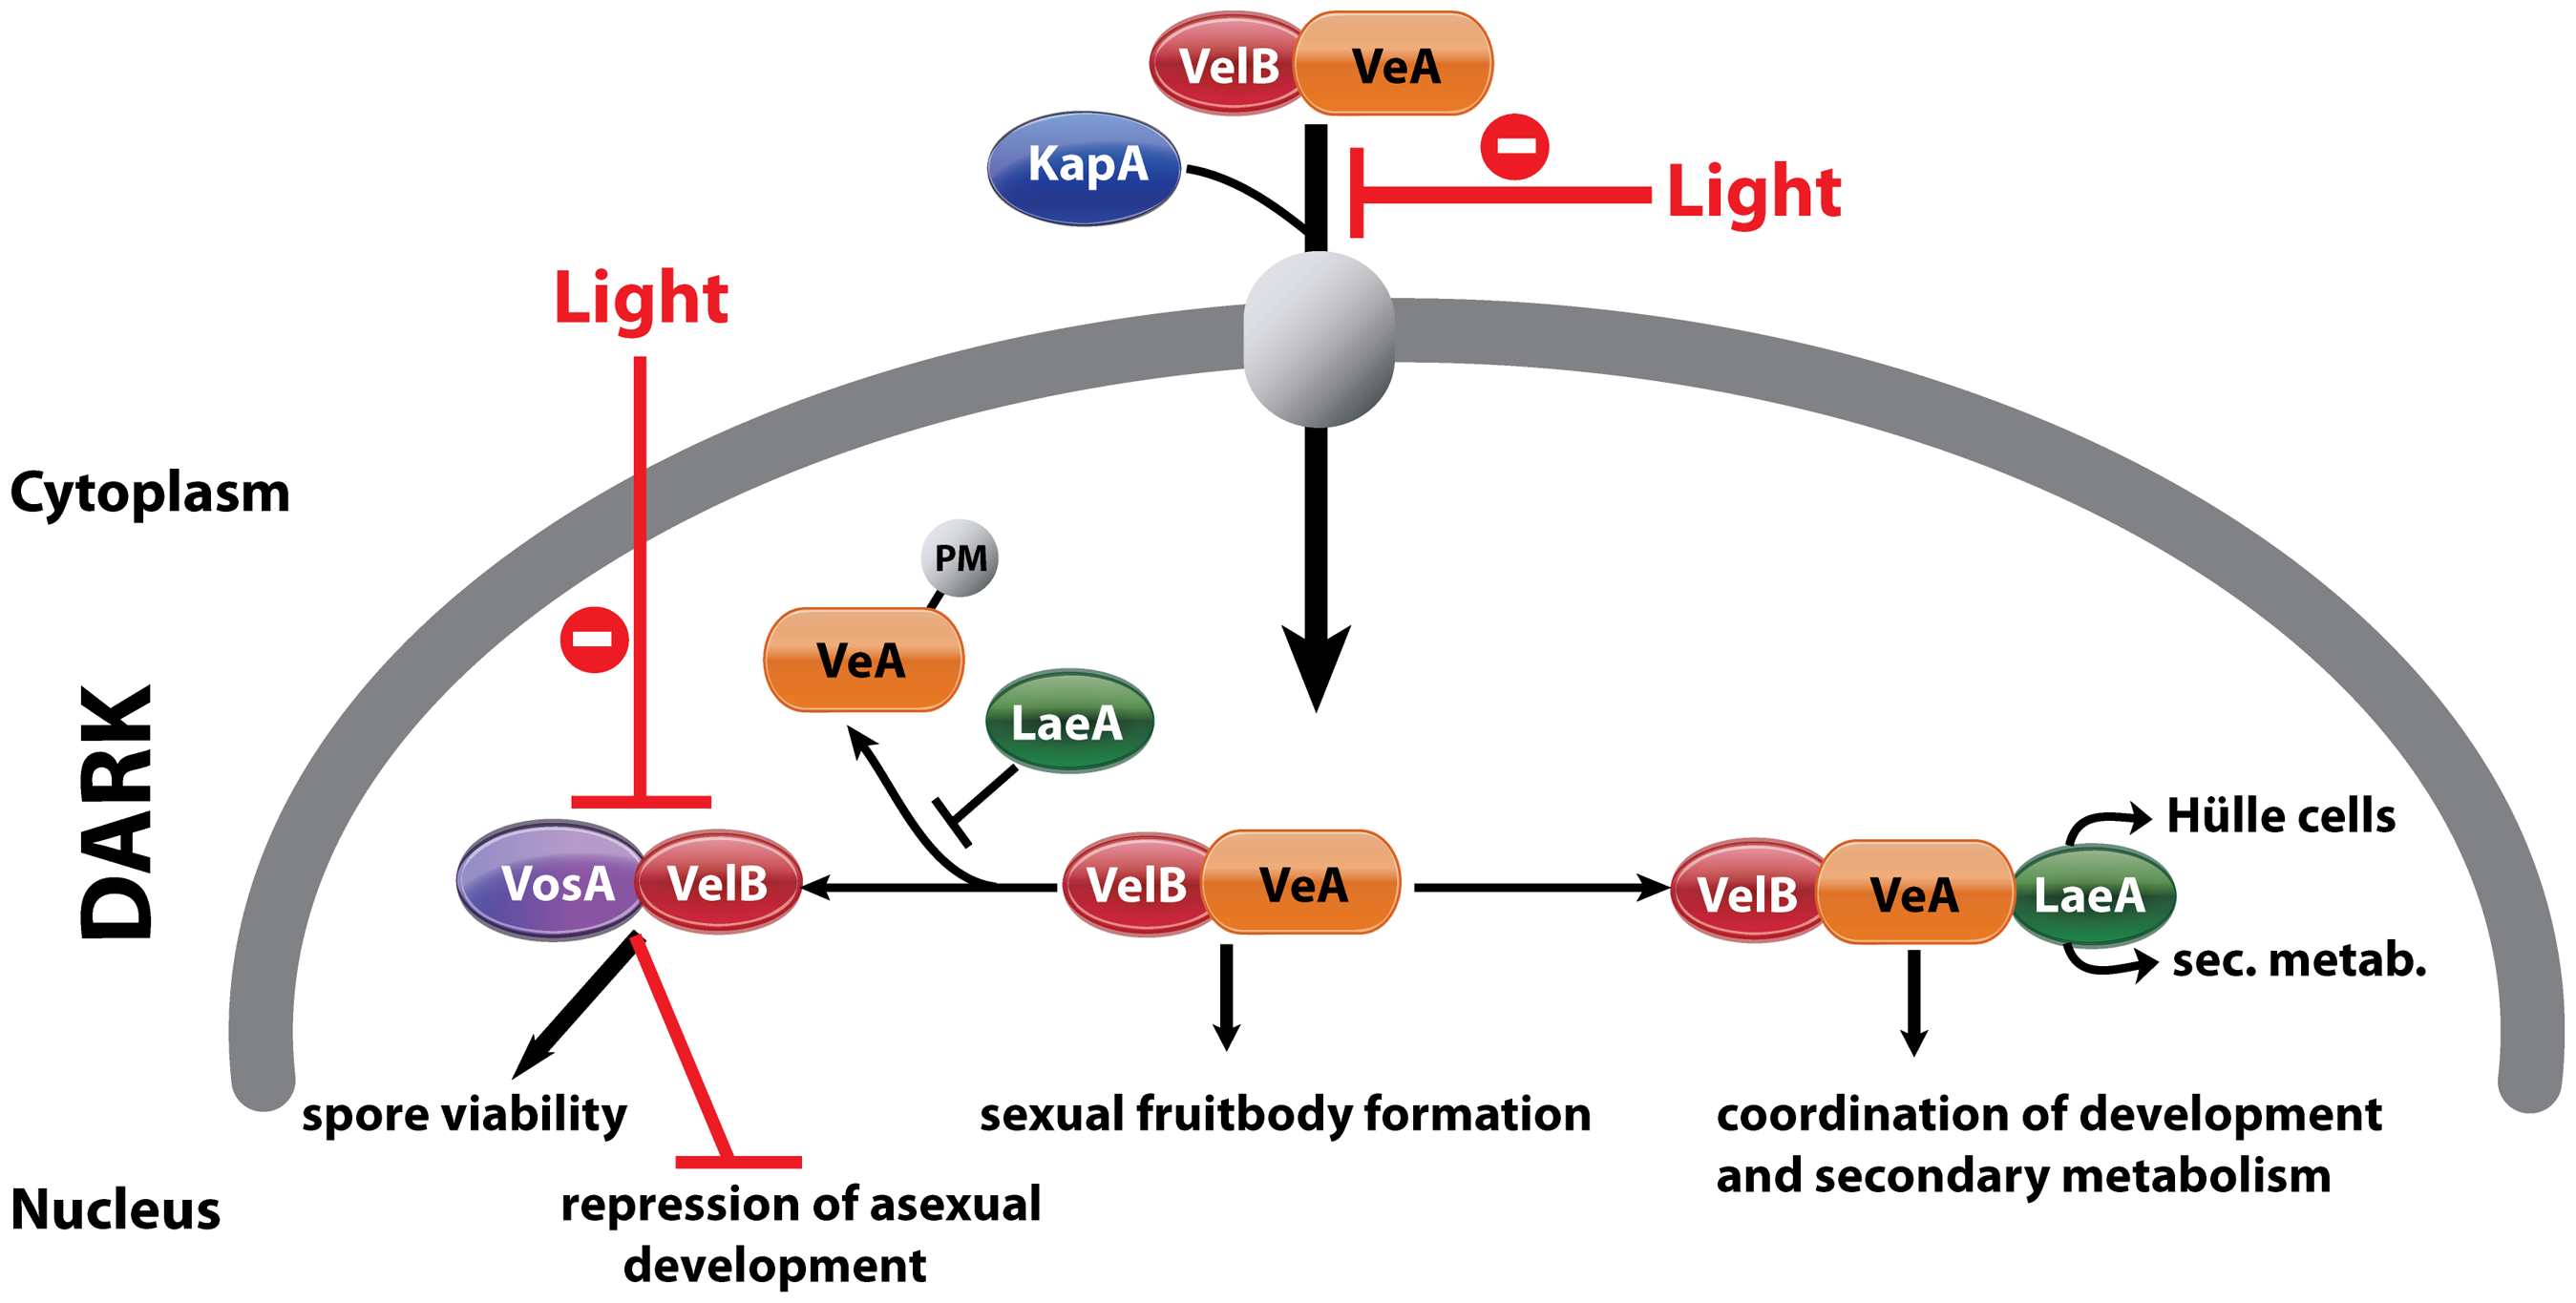 Complexes of velvet family regulatory proteins and LaeA during <i>A. nidulans</i> development.